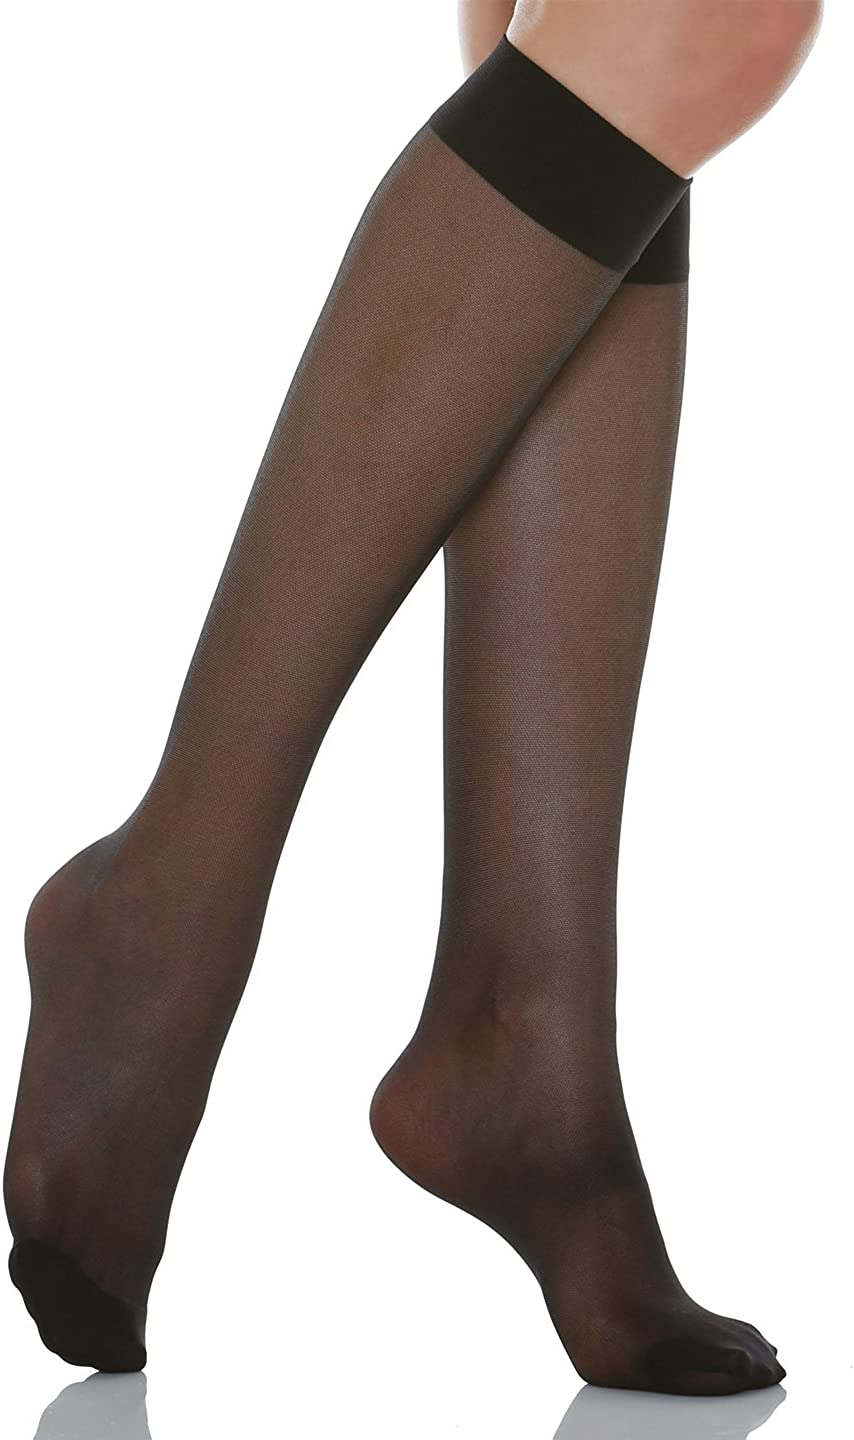 Relaxsan Basic 700 light support knee high socks 10-15 mmHg